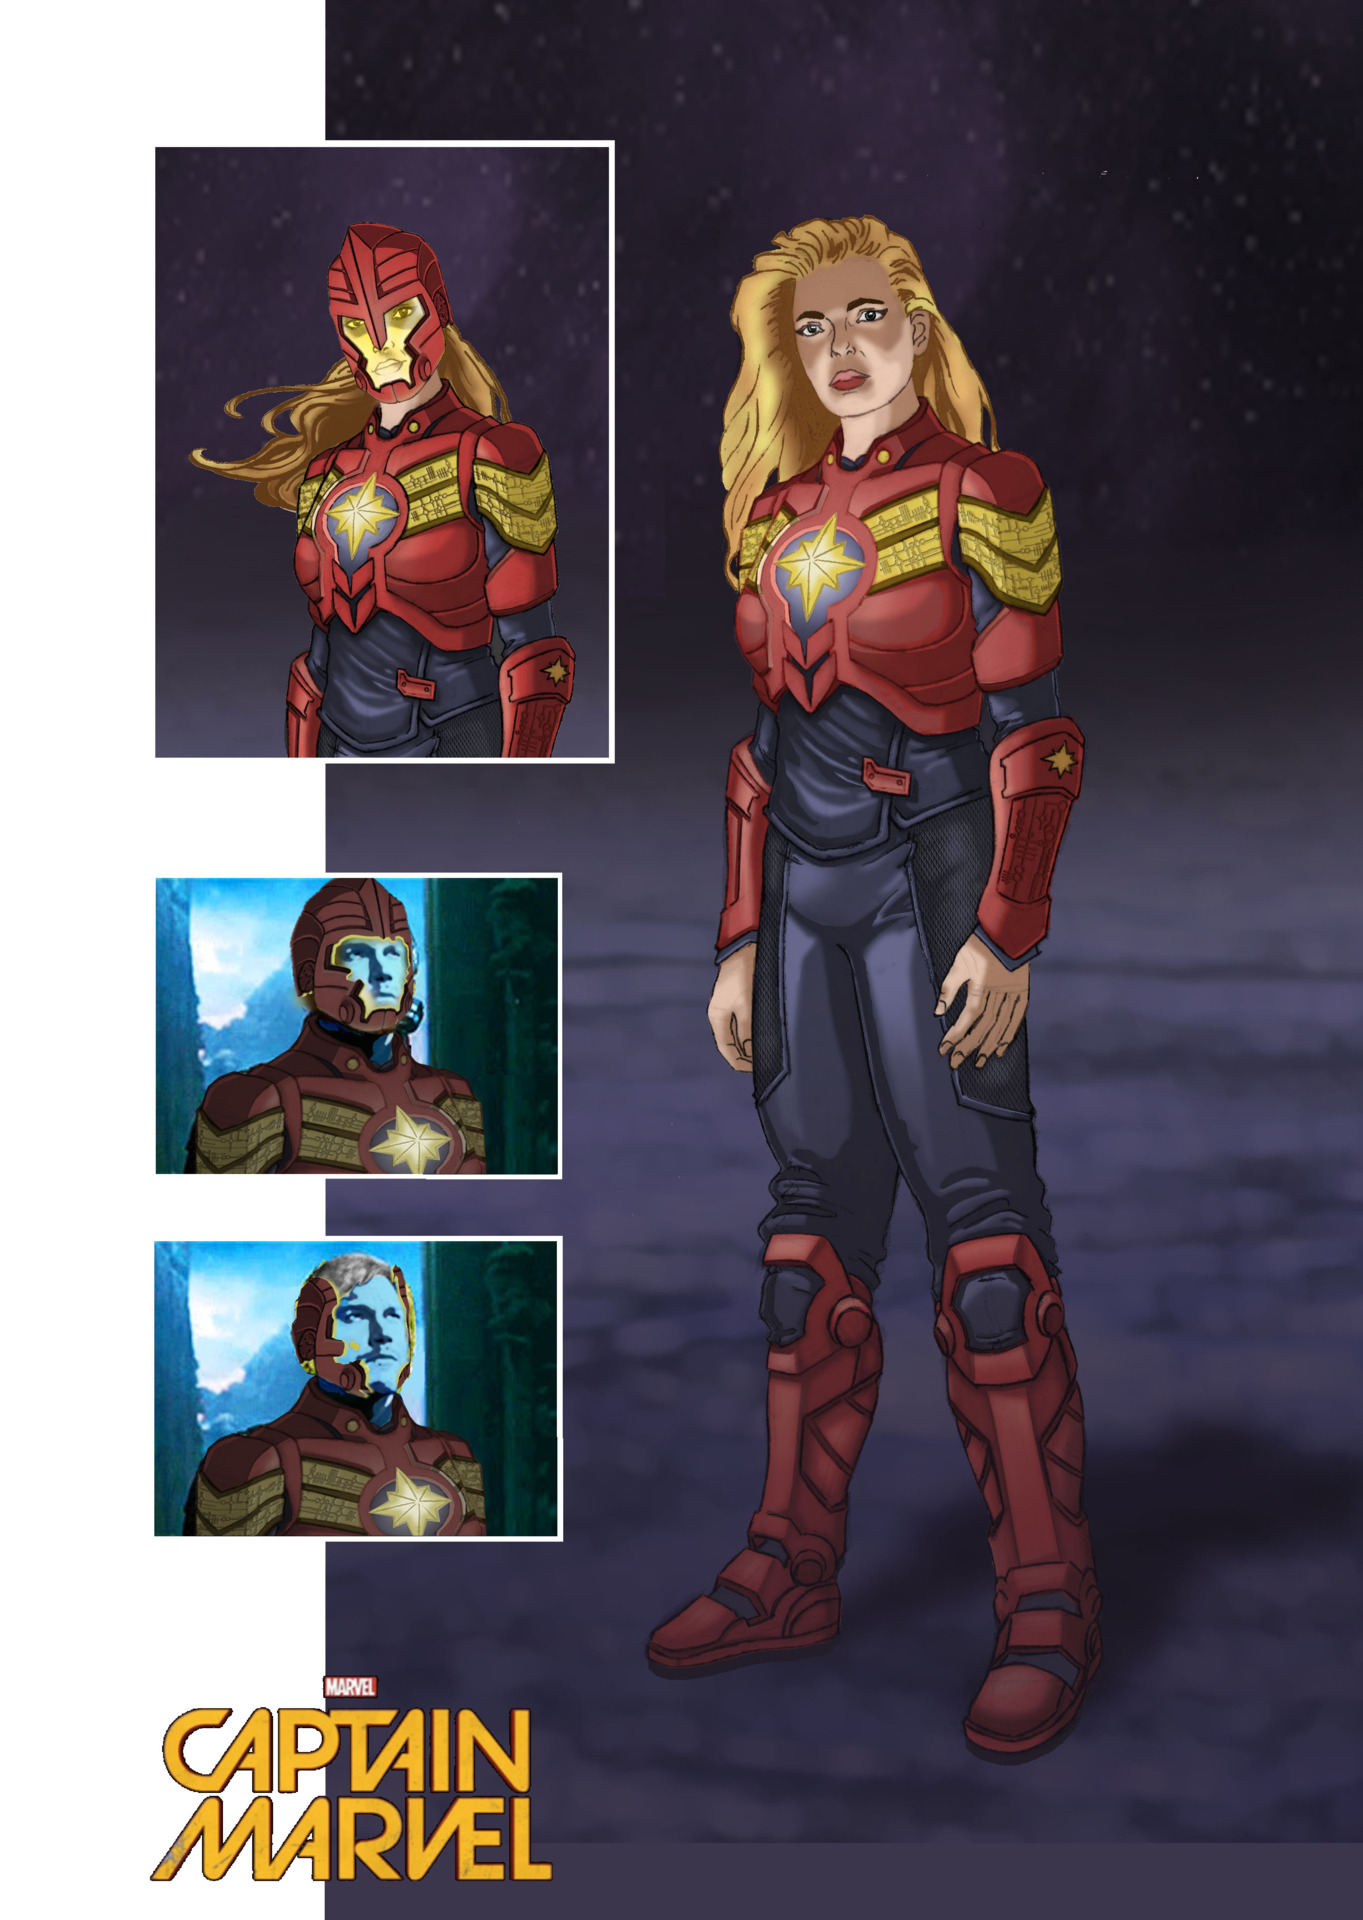 This is my concept art for Carol Danvers/Captain Marvel movie.